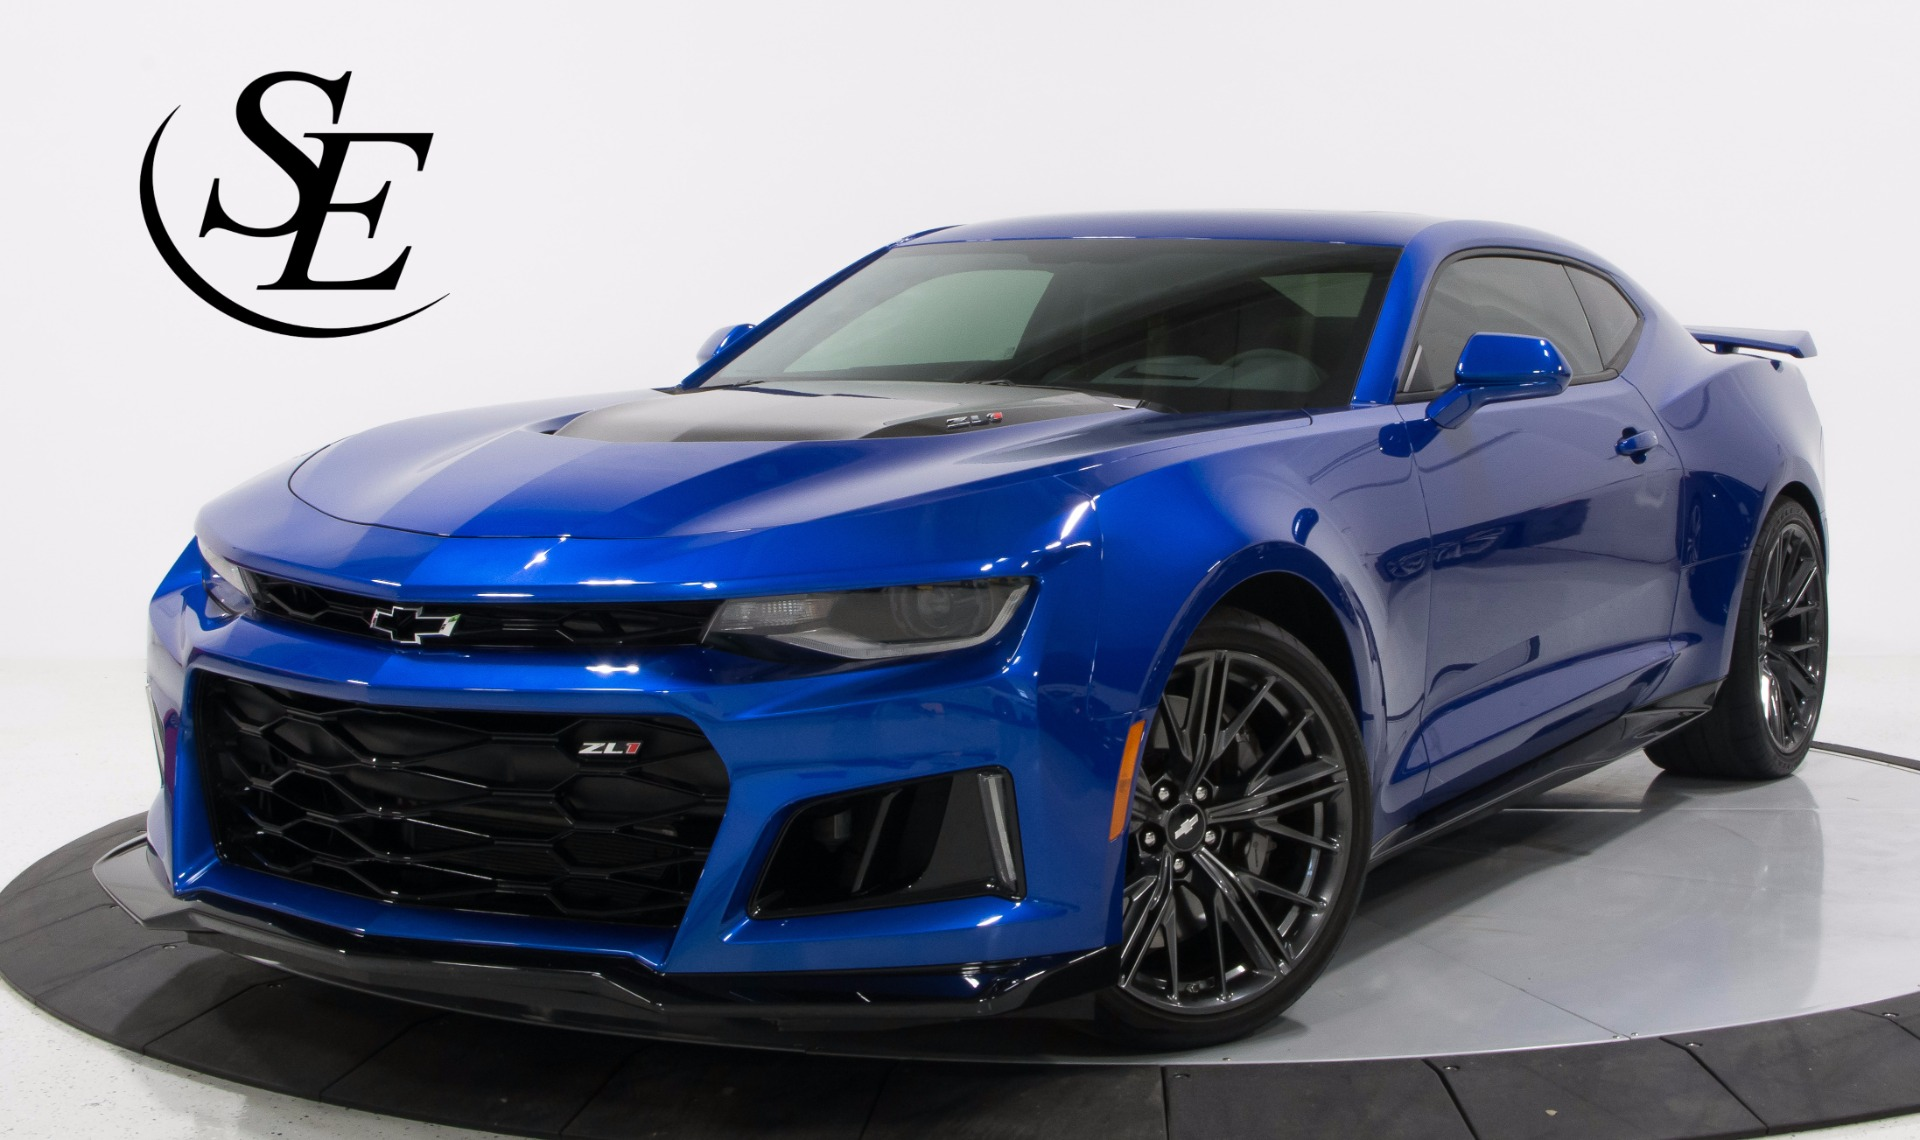 camaro zl1 for sale 2018 2019 new car reviews by language kompis. Black Bedroom Furniture Sets. Home Design Ideas